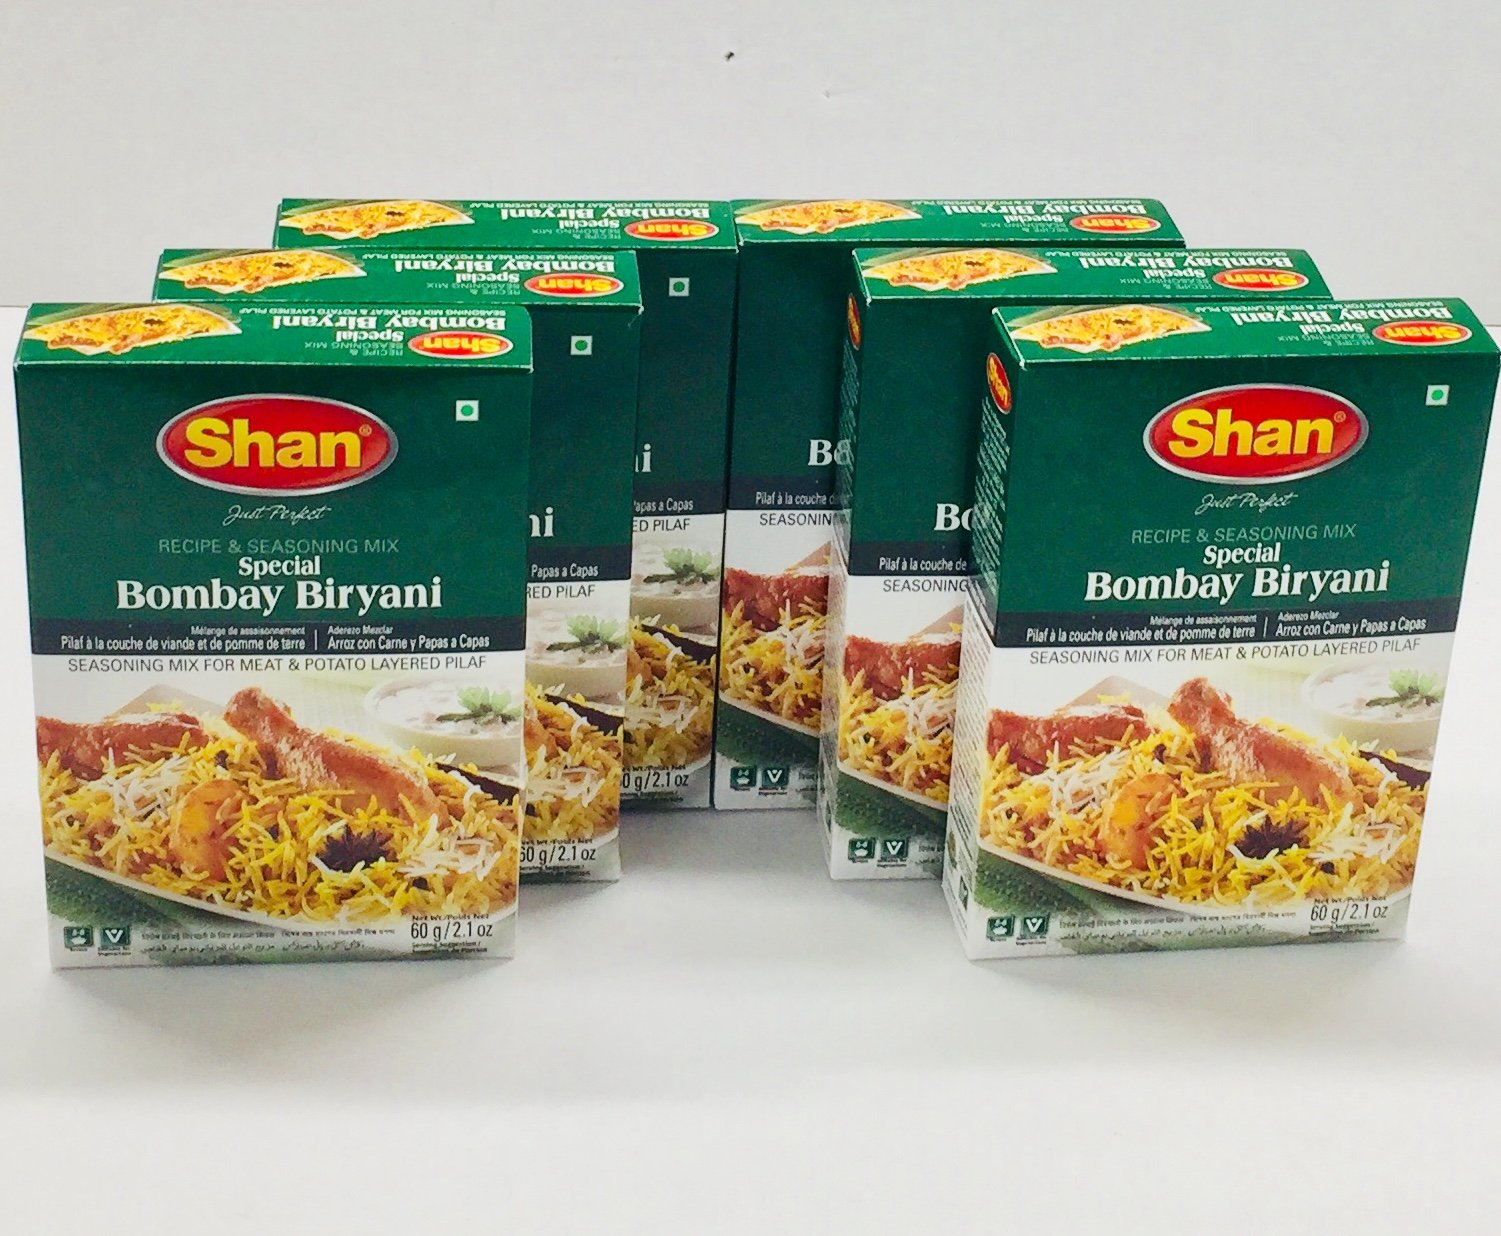 Shan Premium Special Bombay Biryani Masala Recipe And Seasoning Mix, Indian Food Spices, 2.1oz/60g  (Pack of 6)